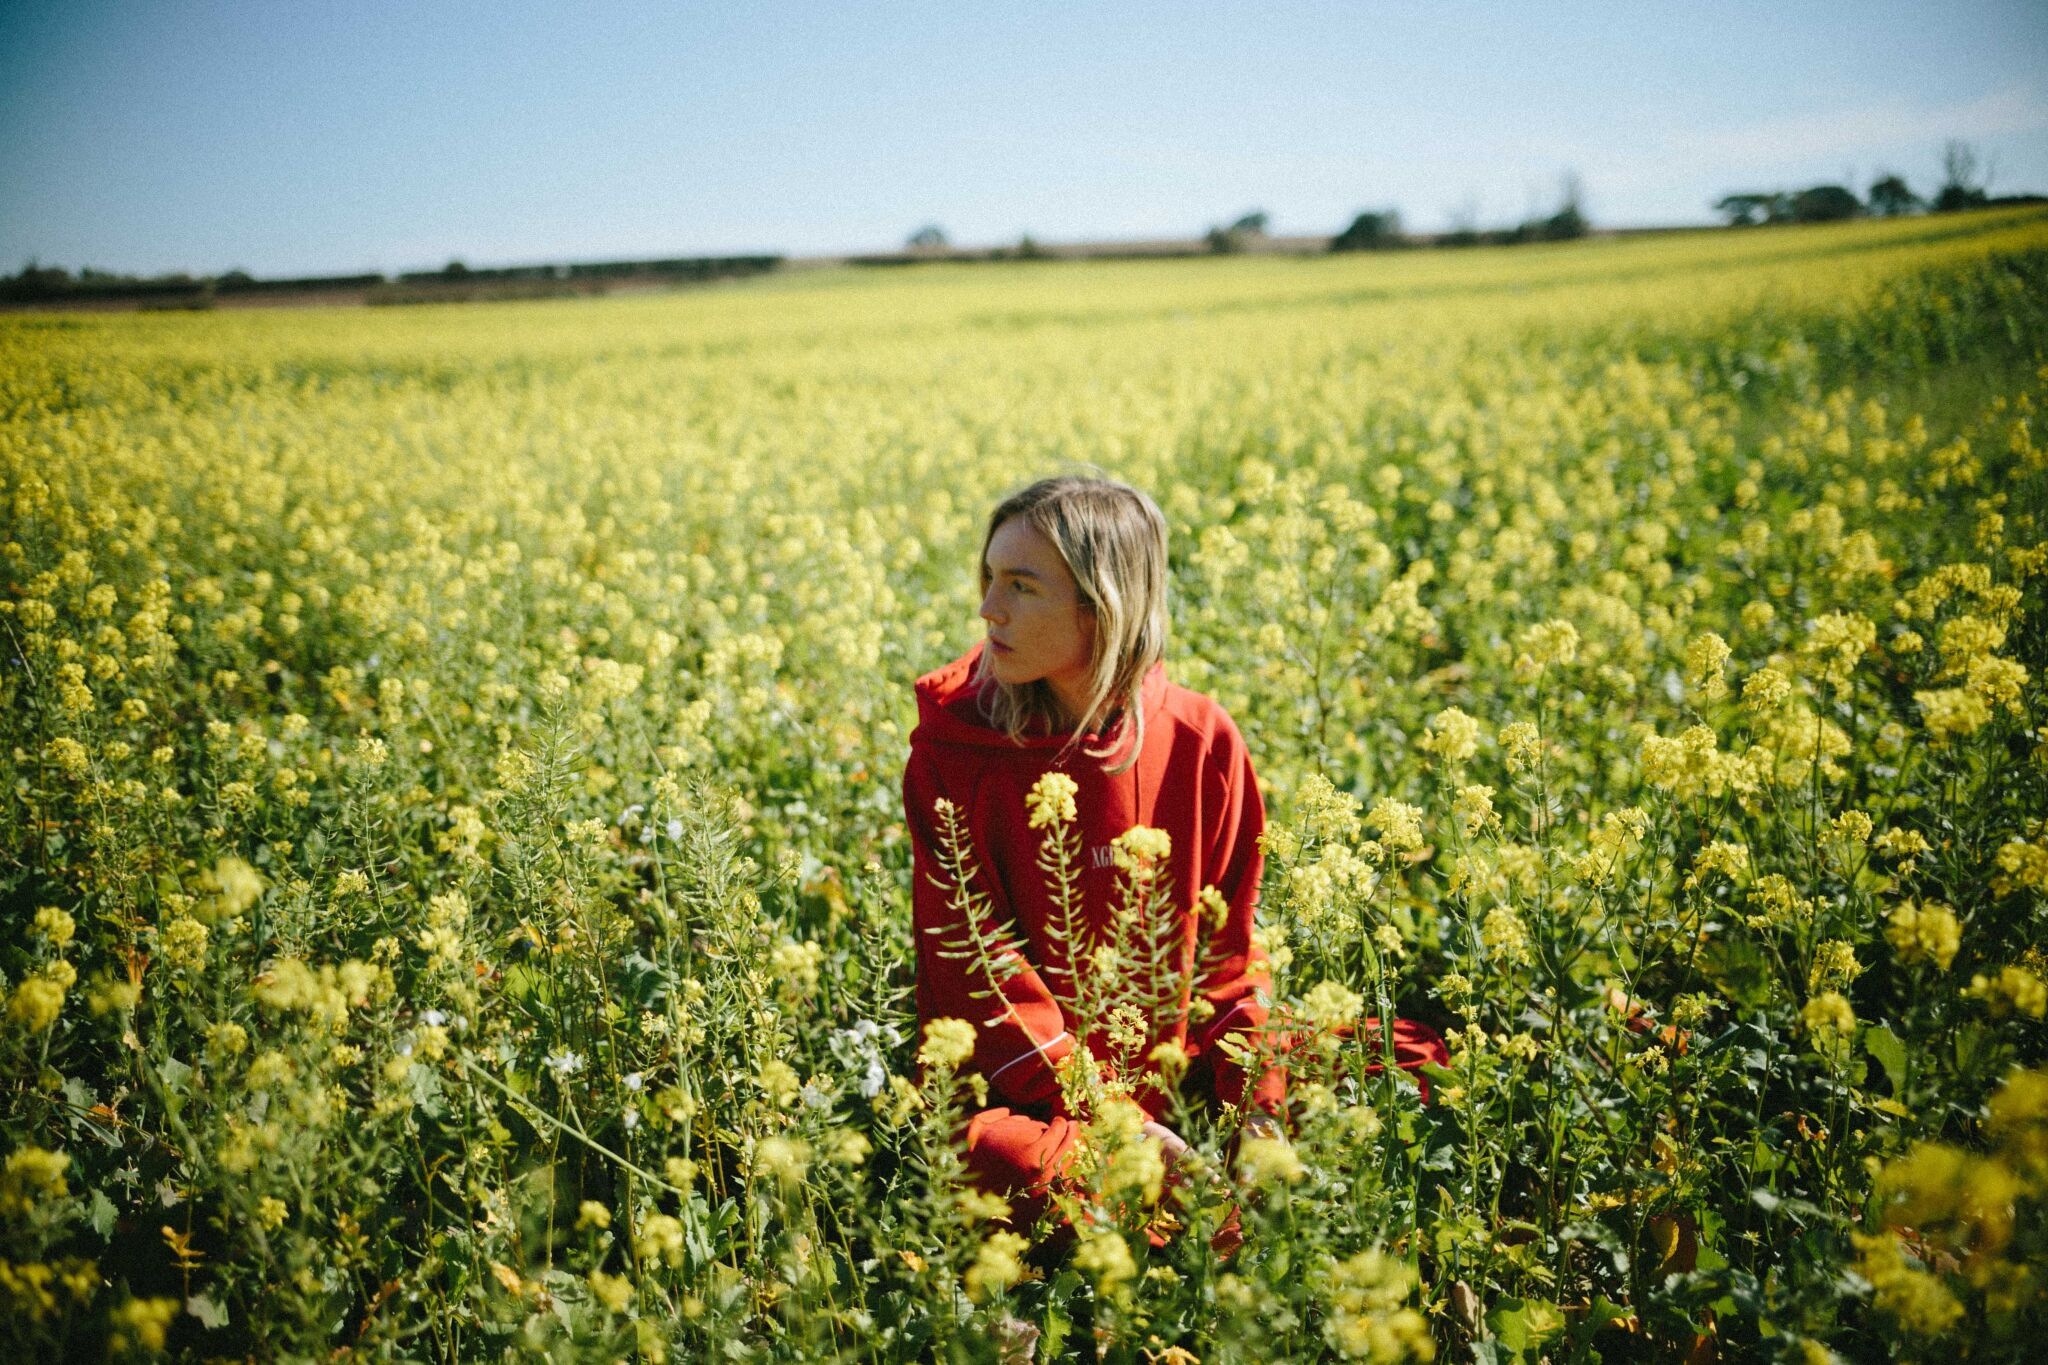 The Japanese House will be touring the UK in March